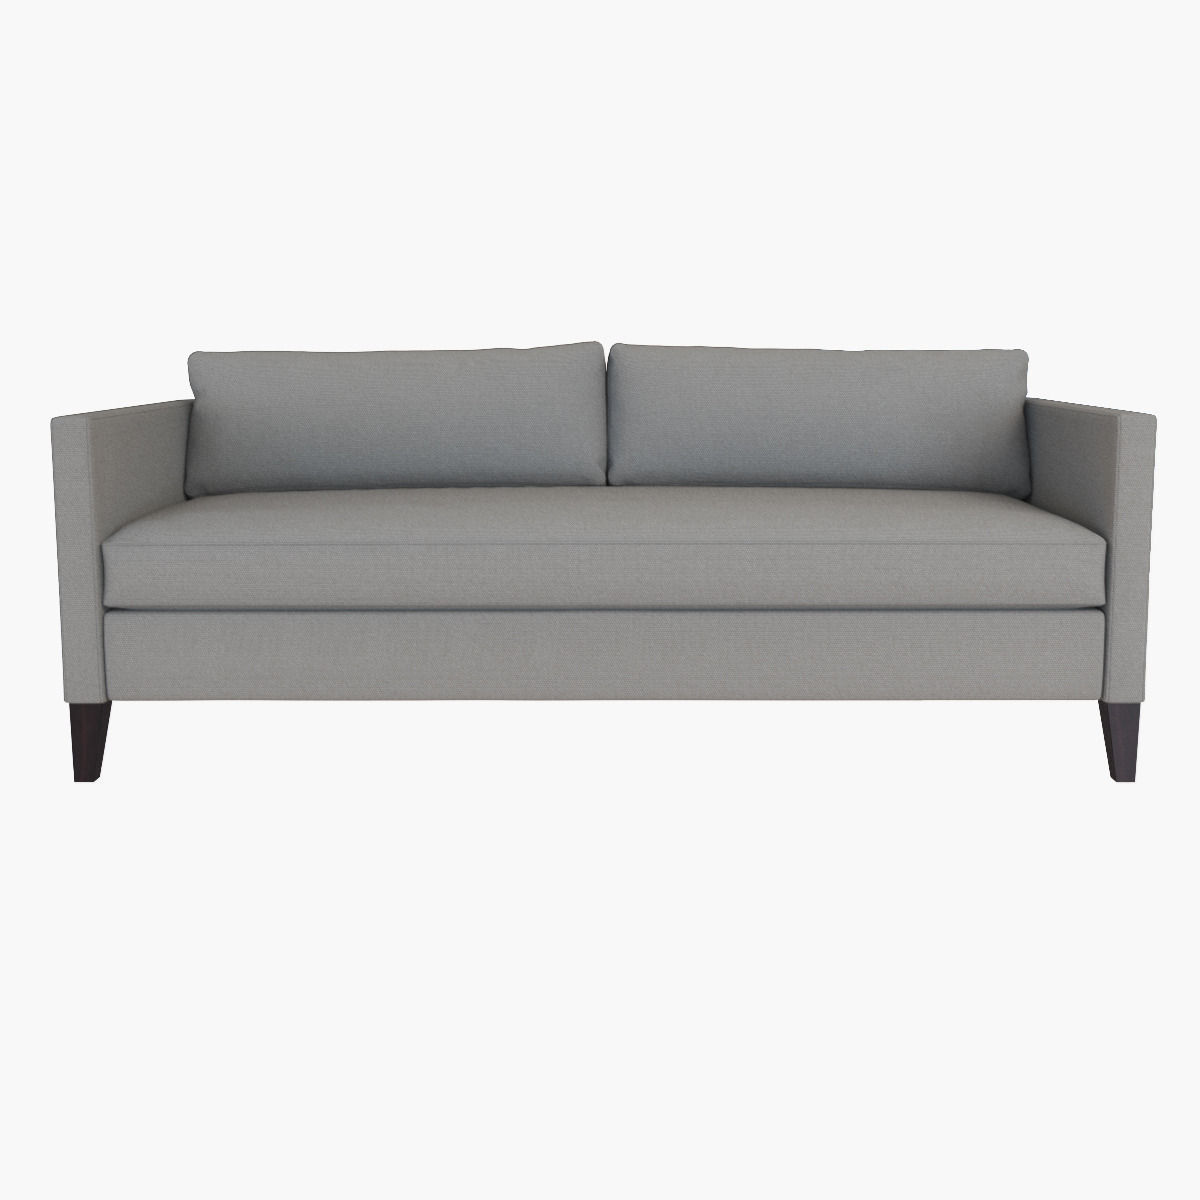 West Elm Dunham Down-Filled Sofa - Box Cushion